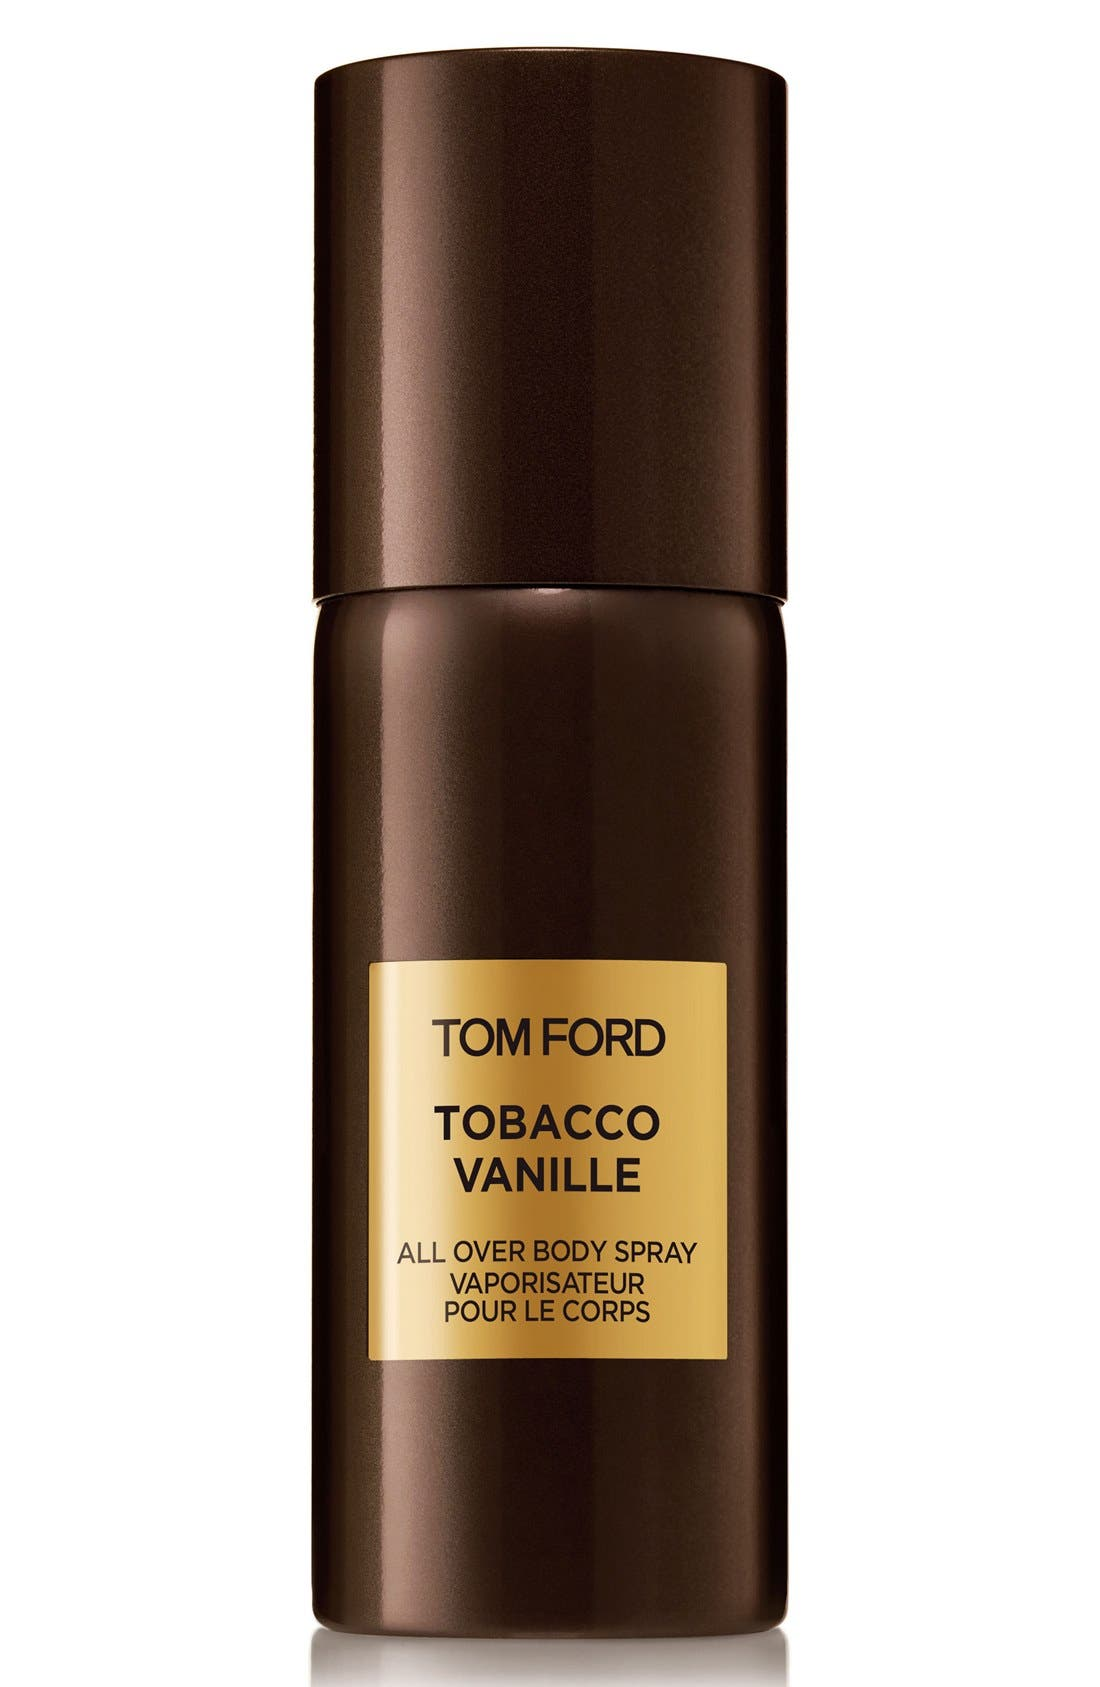 Tom Ford 'Tobacco Vanille' All Over Body Spray